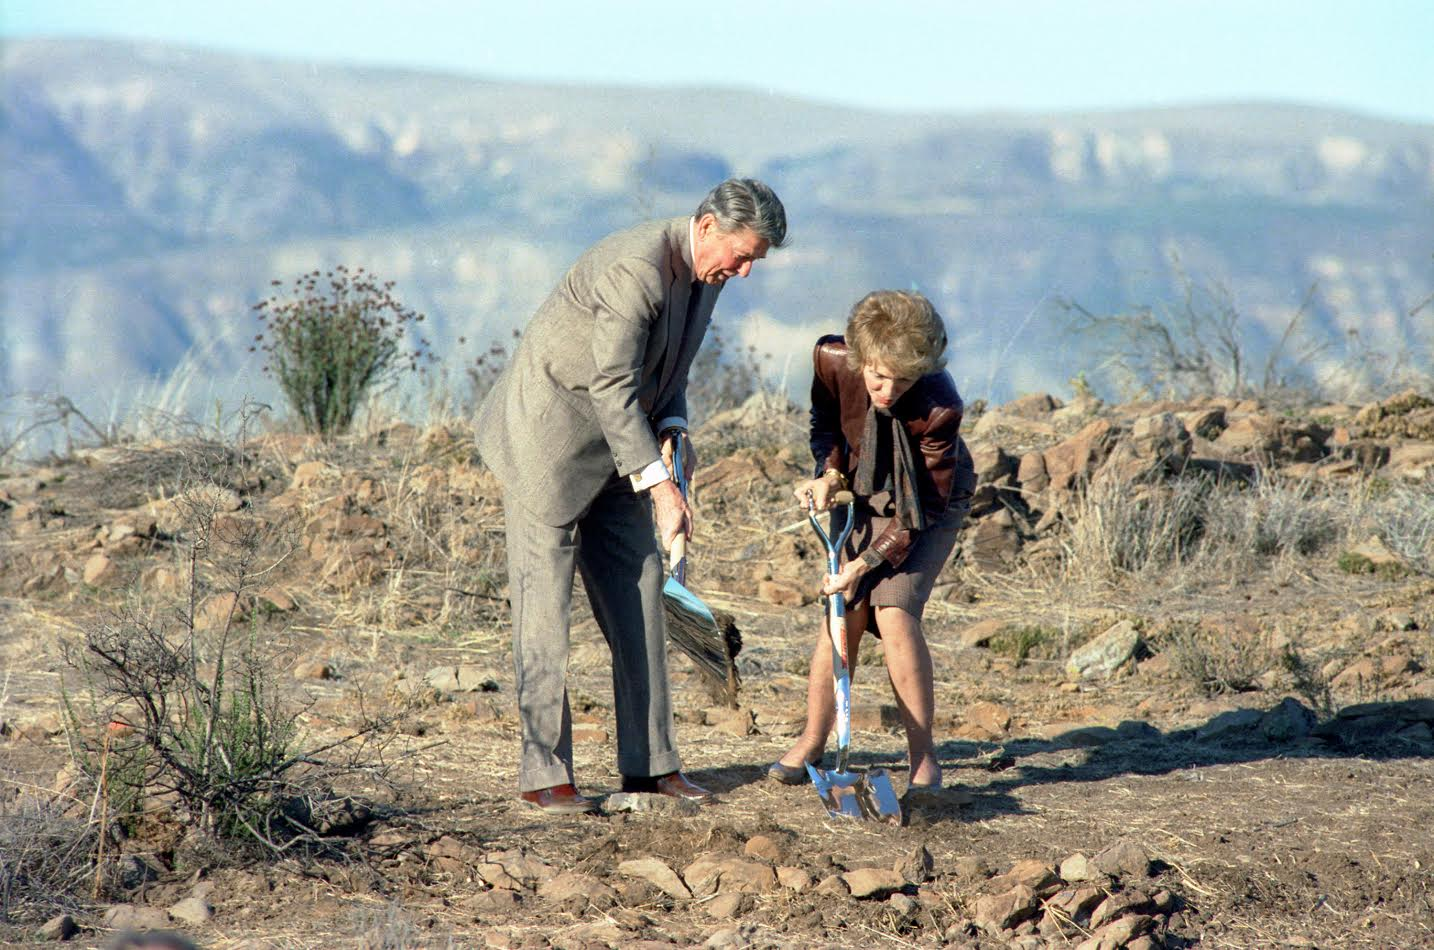 President Reagan and Nancy Reagan Breaking Ground for the Ronald Reagan Presidential Library and Museum, November 21, 1988. (Ronald Reagan Presidential Library and Museum, National Archives)